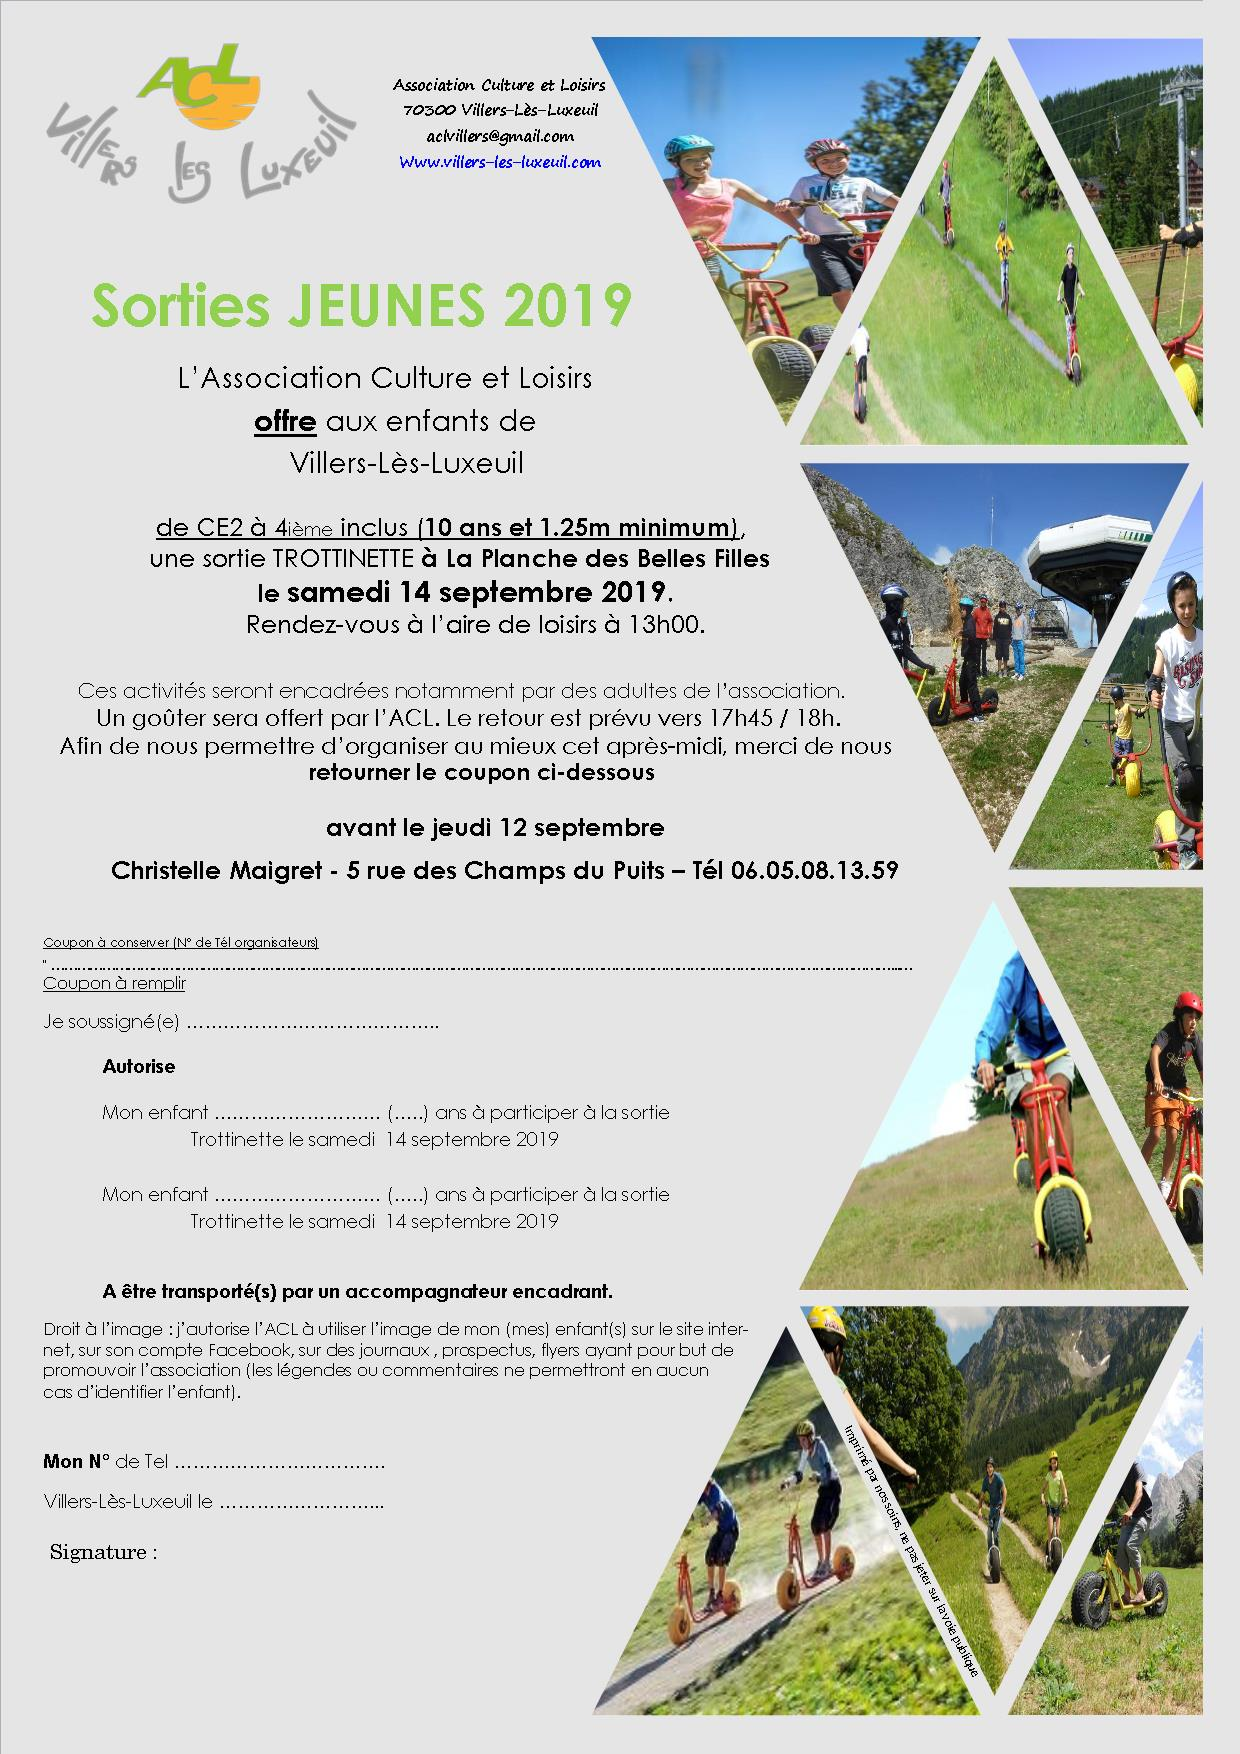 https://www.villers-les-luxeuil.com/projets/villers/files/images/2019_Evenements/00_TRACTS/Tract_Sortie_jeunes_trottinette_2019.jpg